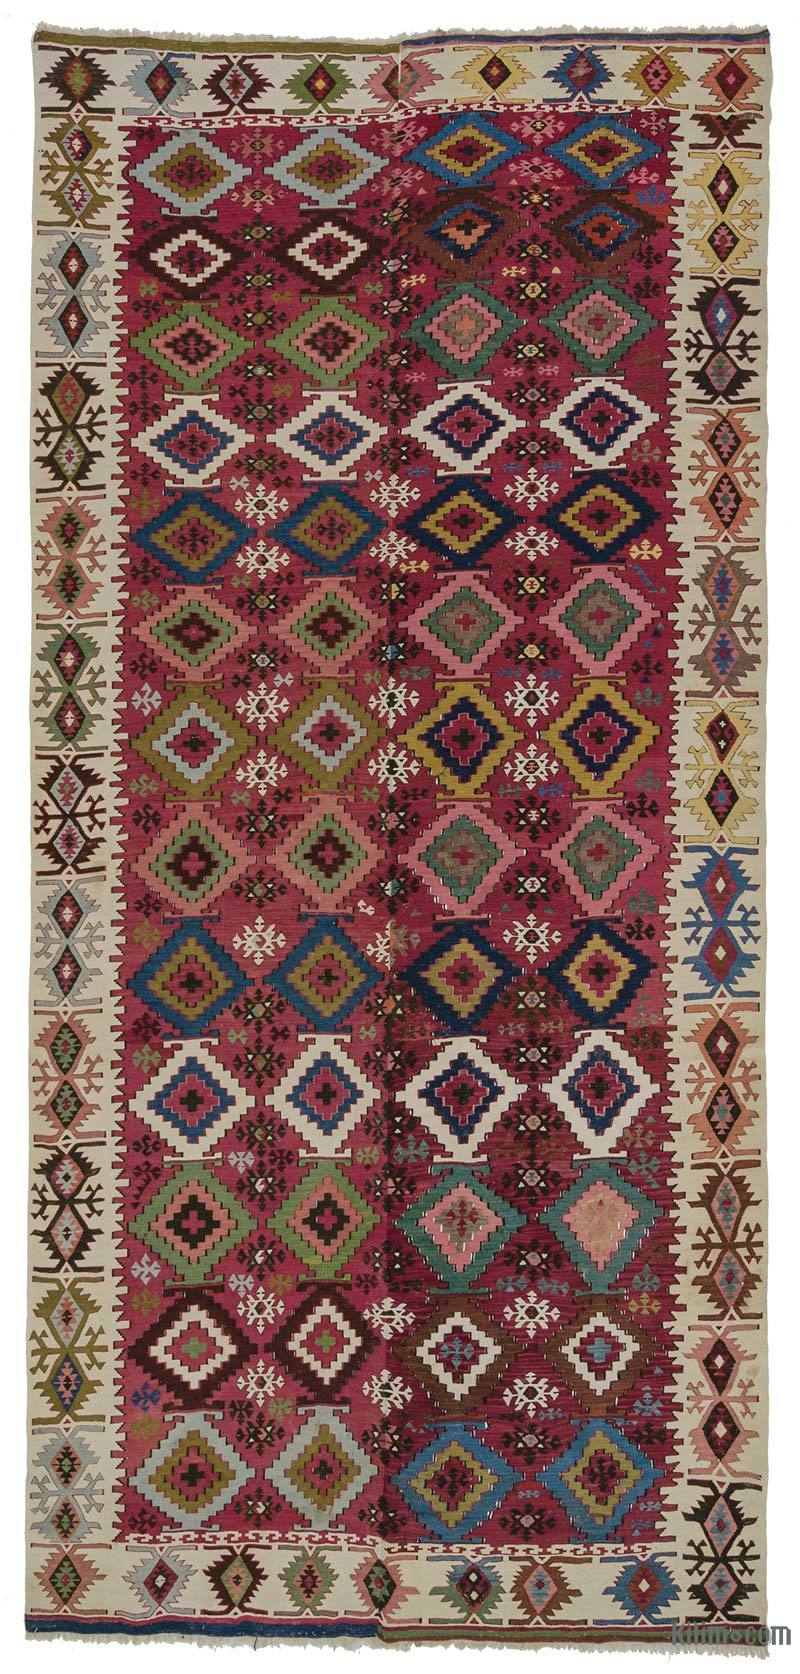 K0007983 Multicolor Antique Adana Kilim Rug